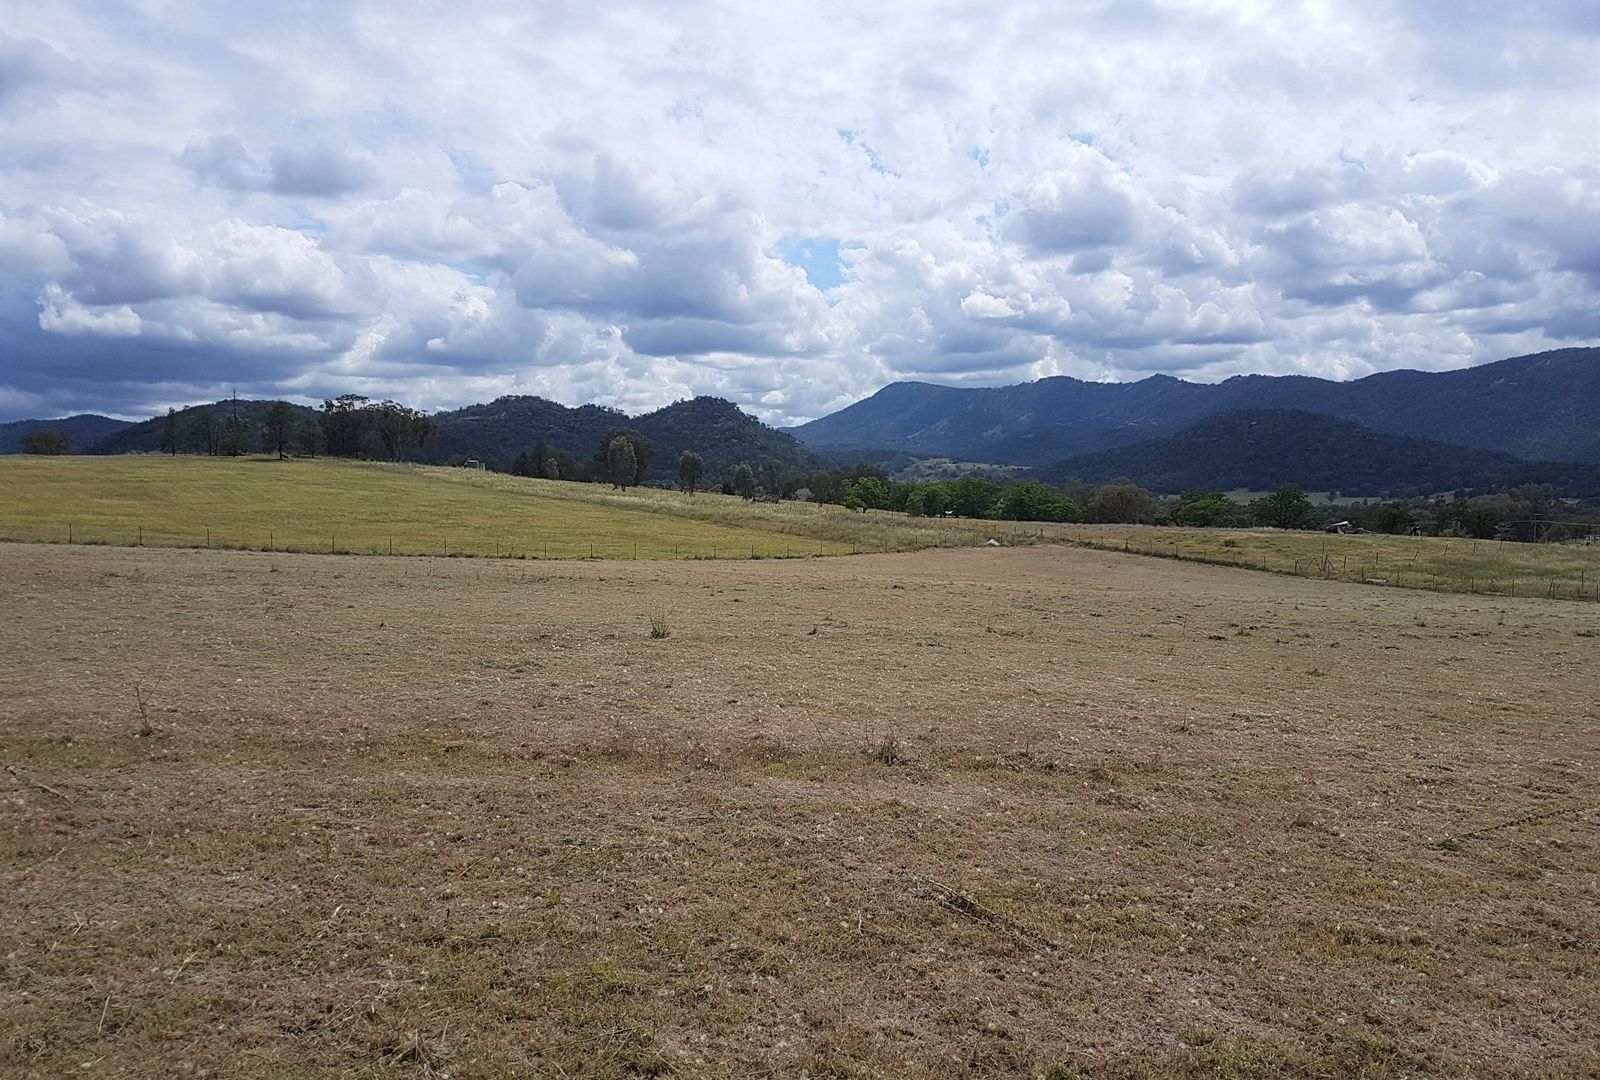 LOT 8 MOONBI HEIGHTS, MOONBI, Kootingal NSW 2352, Image 1